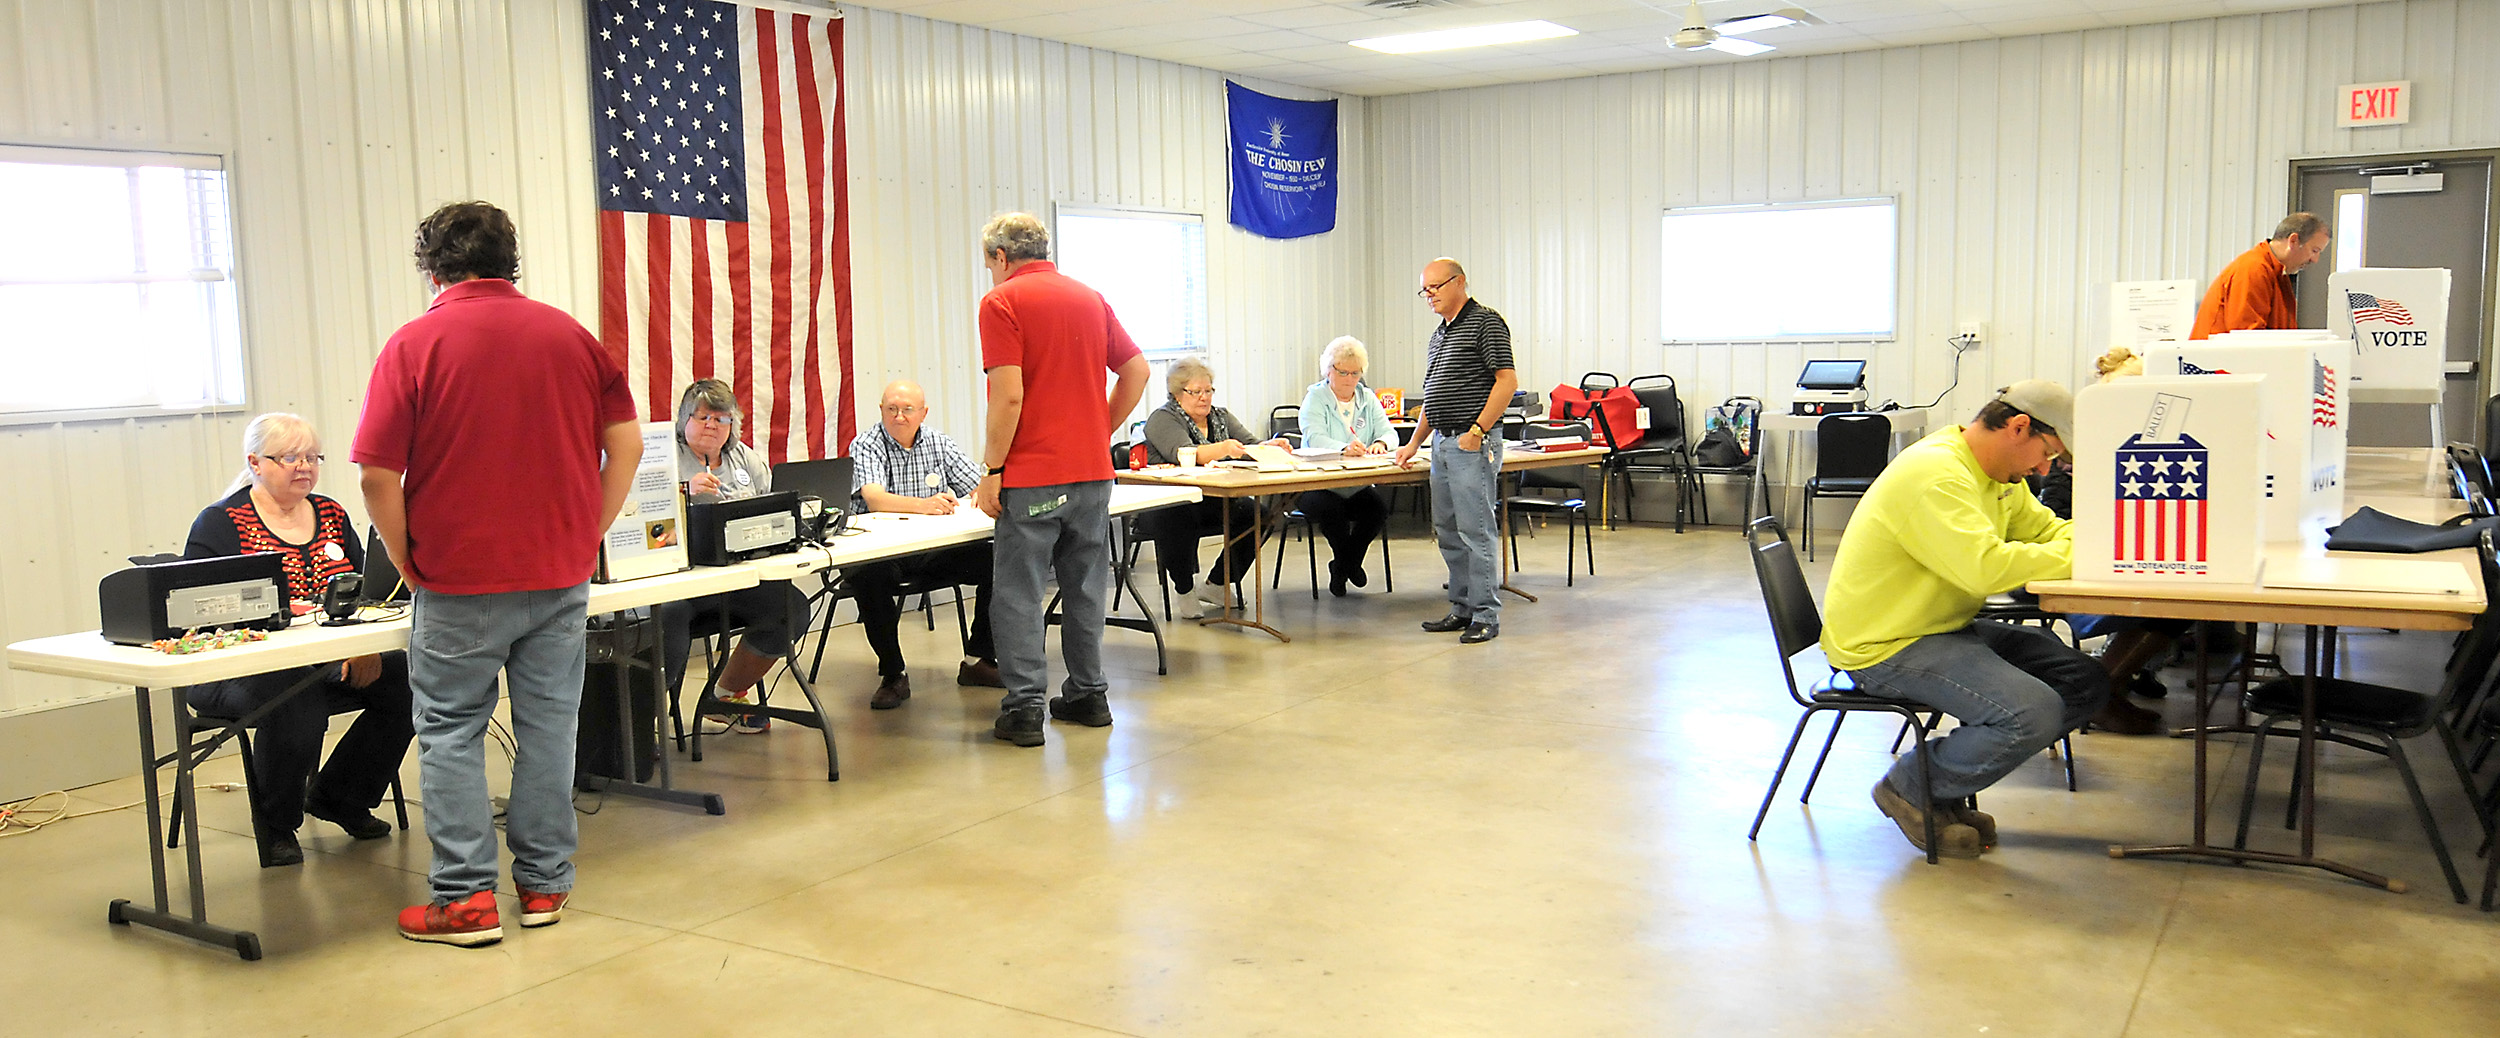 People vote at a polling place on Nov. 8, 2016, in Redfield, Iowa.